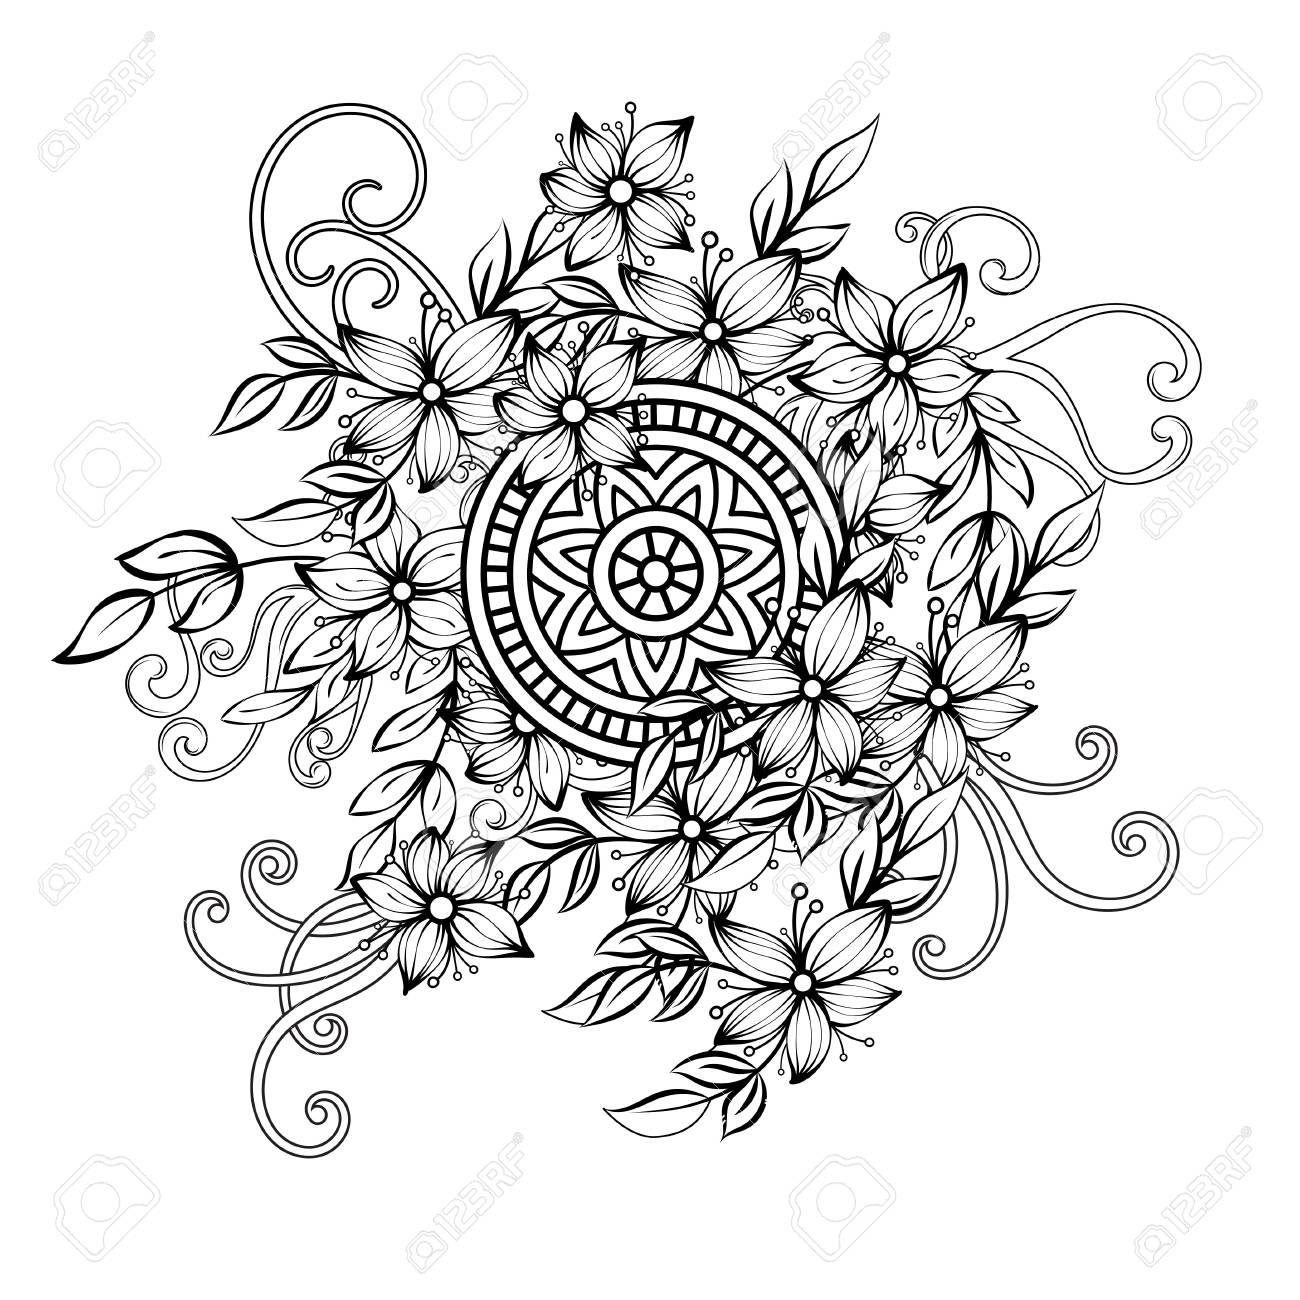 Floral pattern in black and white. Adult coloring book page with..